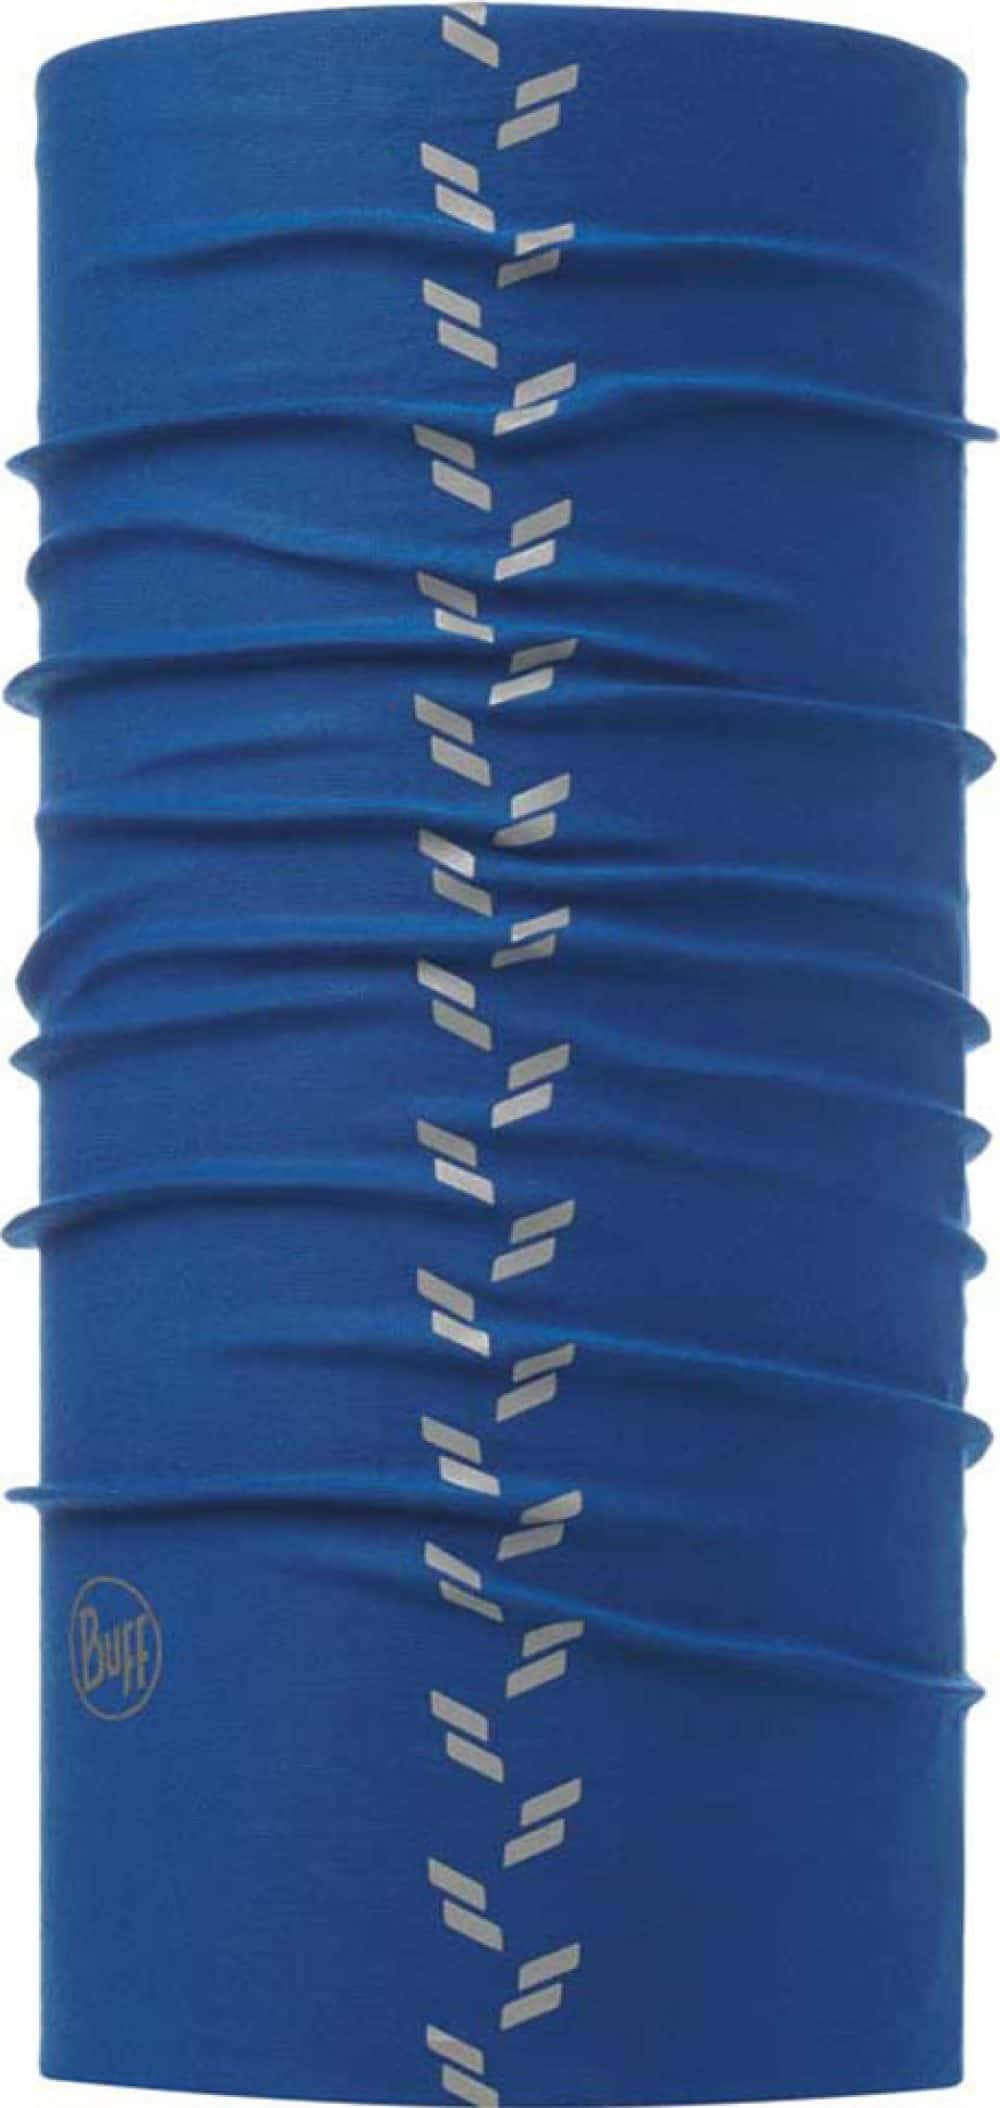 "A studio photo of the Reflective Buff® design ""Blue Skydiver"". It's a solid blue colour with reflective elements going down in a tyre tread pattern. Source: buff.eu"